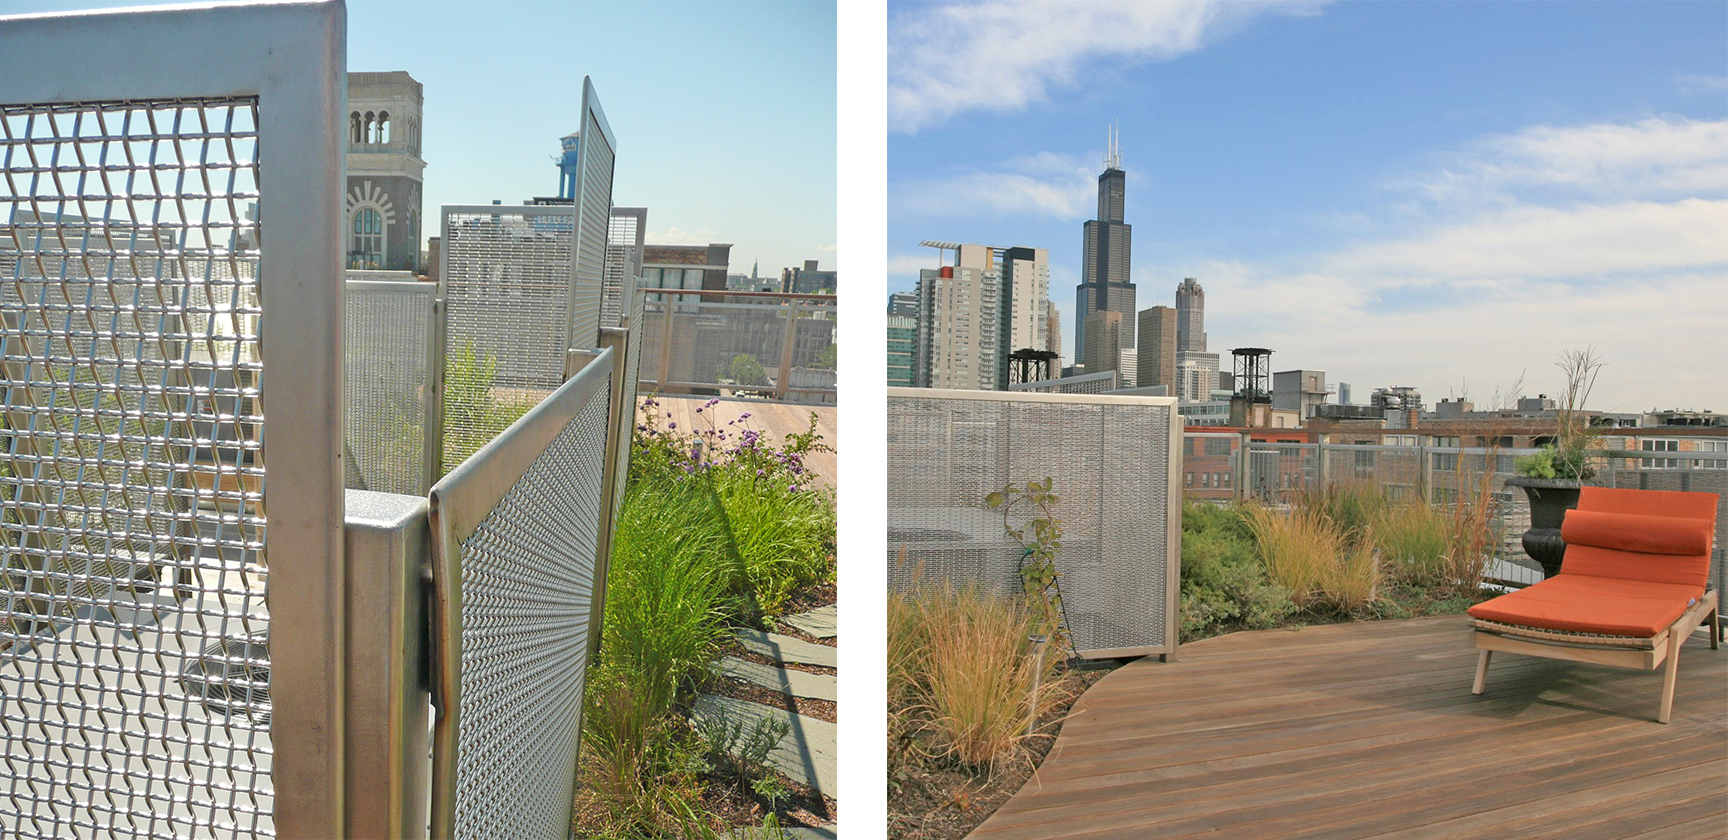 McNICHOLS® Designer Mesh stainless steel panels placed strategically on a downtown Chicago high-rise